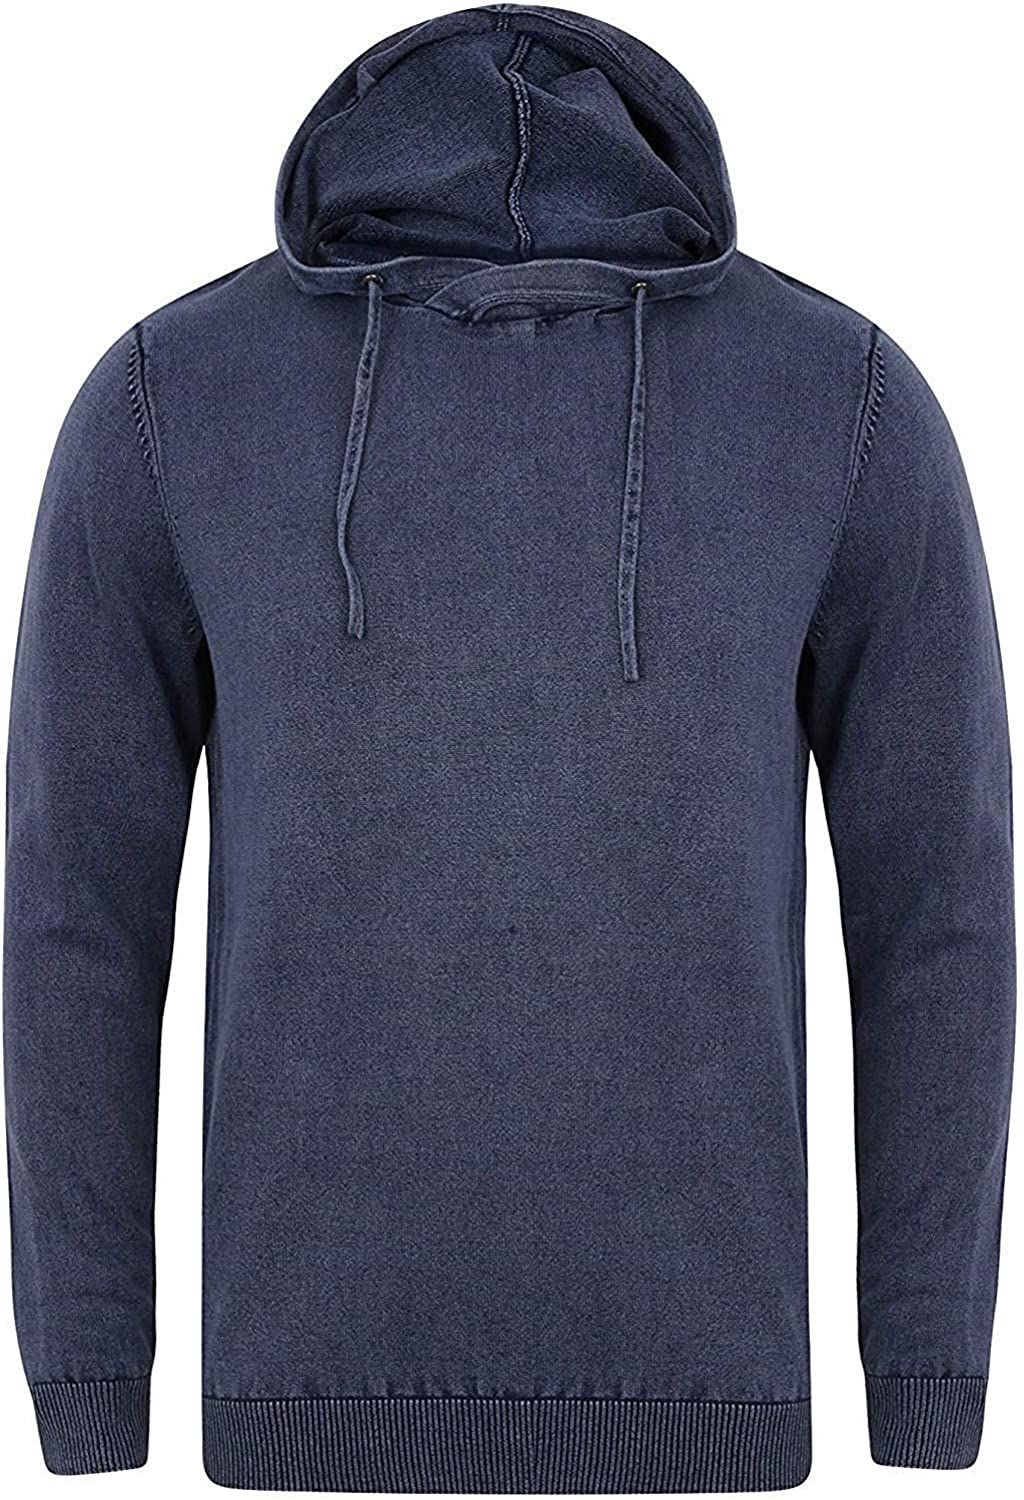 Tokyo Laundry Men's Knitted Jumpers